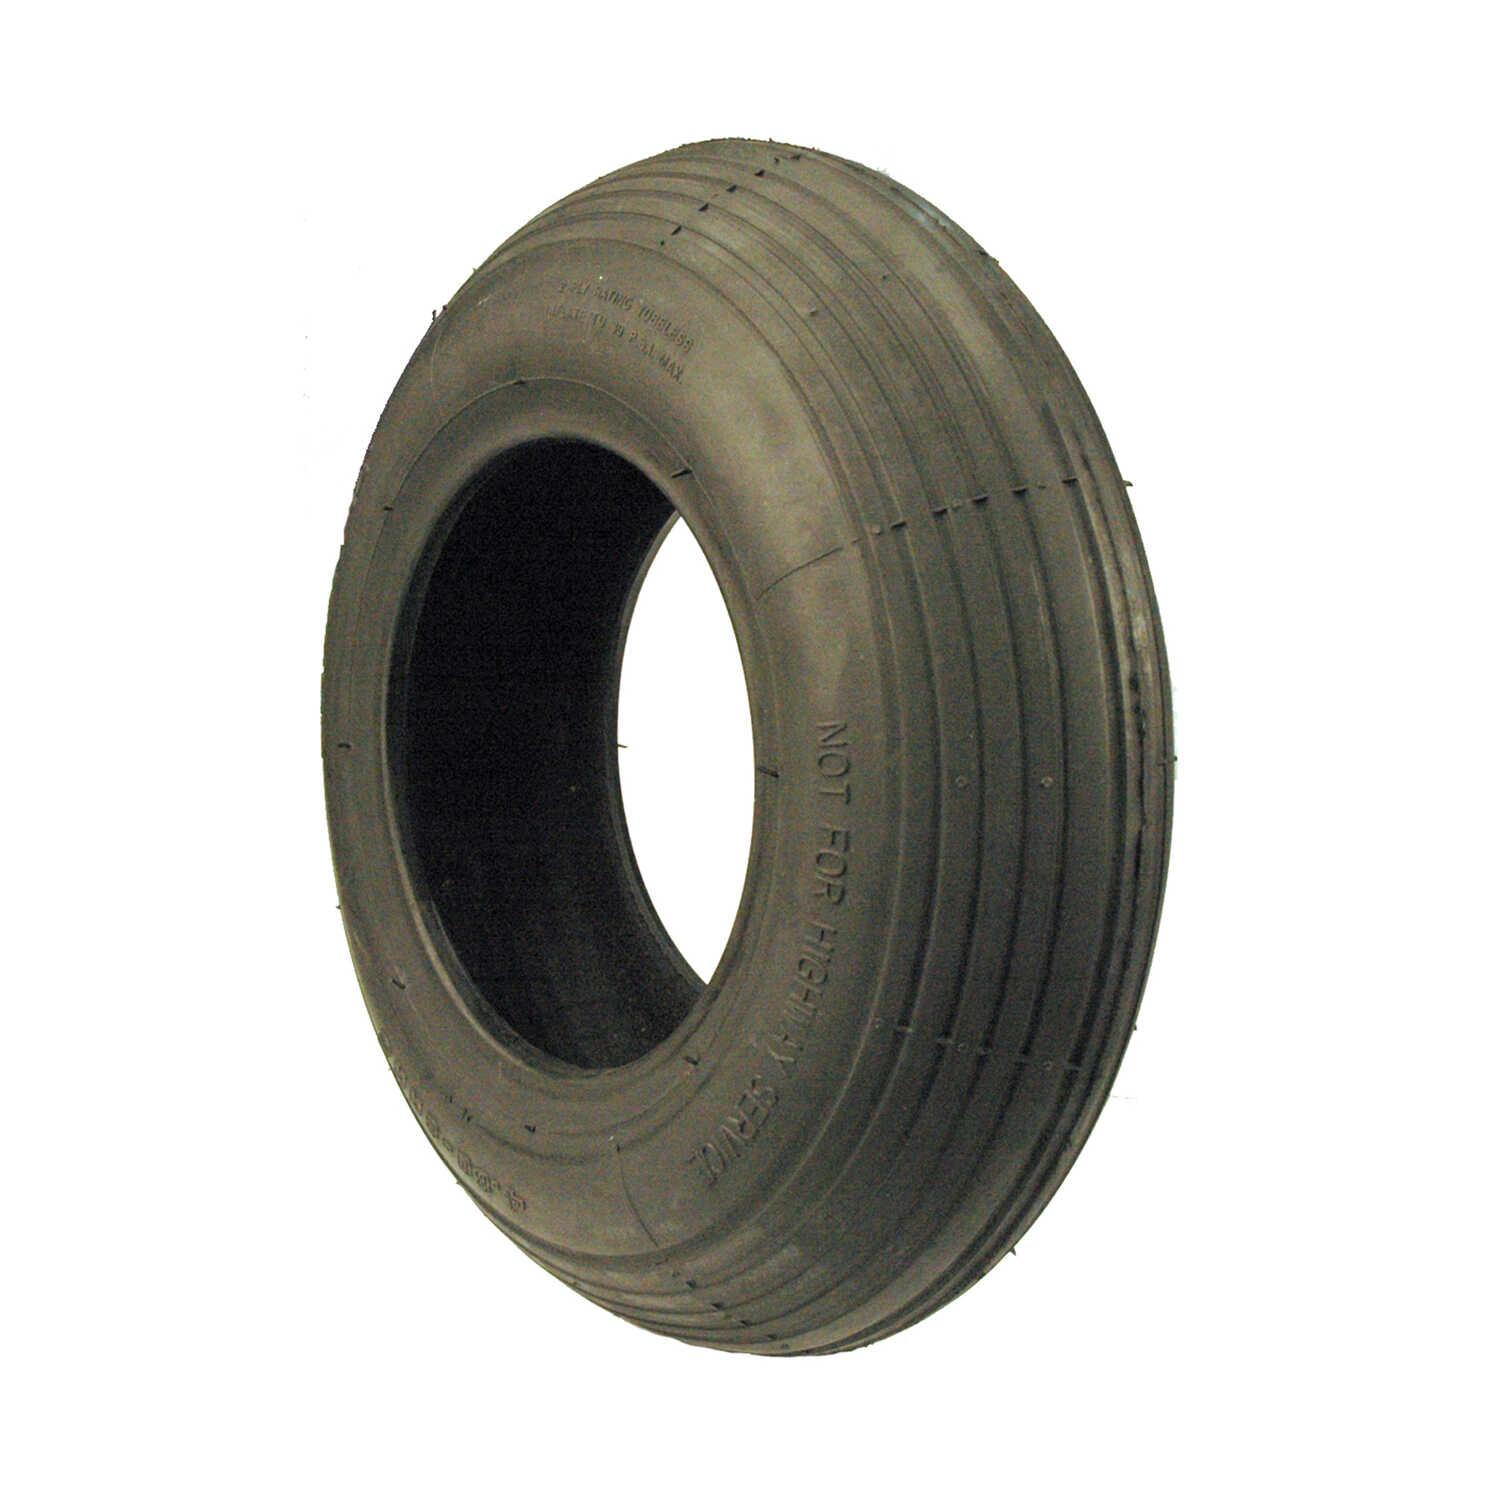 MaxPower  13 in. Dia. 300 lb. capacity Wheelbarrow Tire  Rubber  1 pk